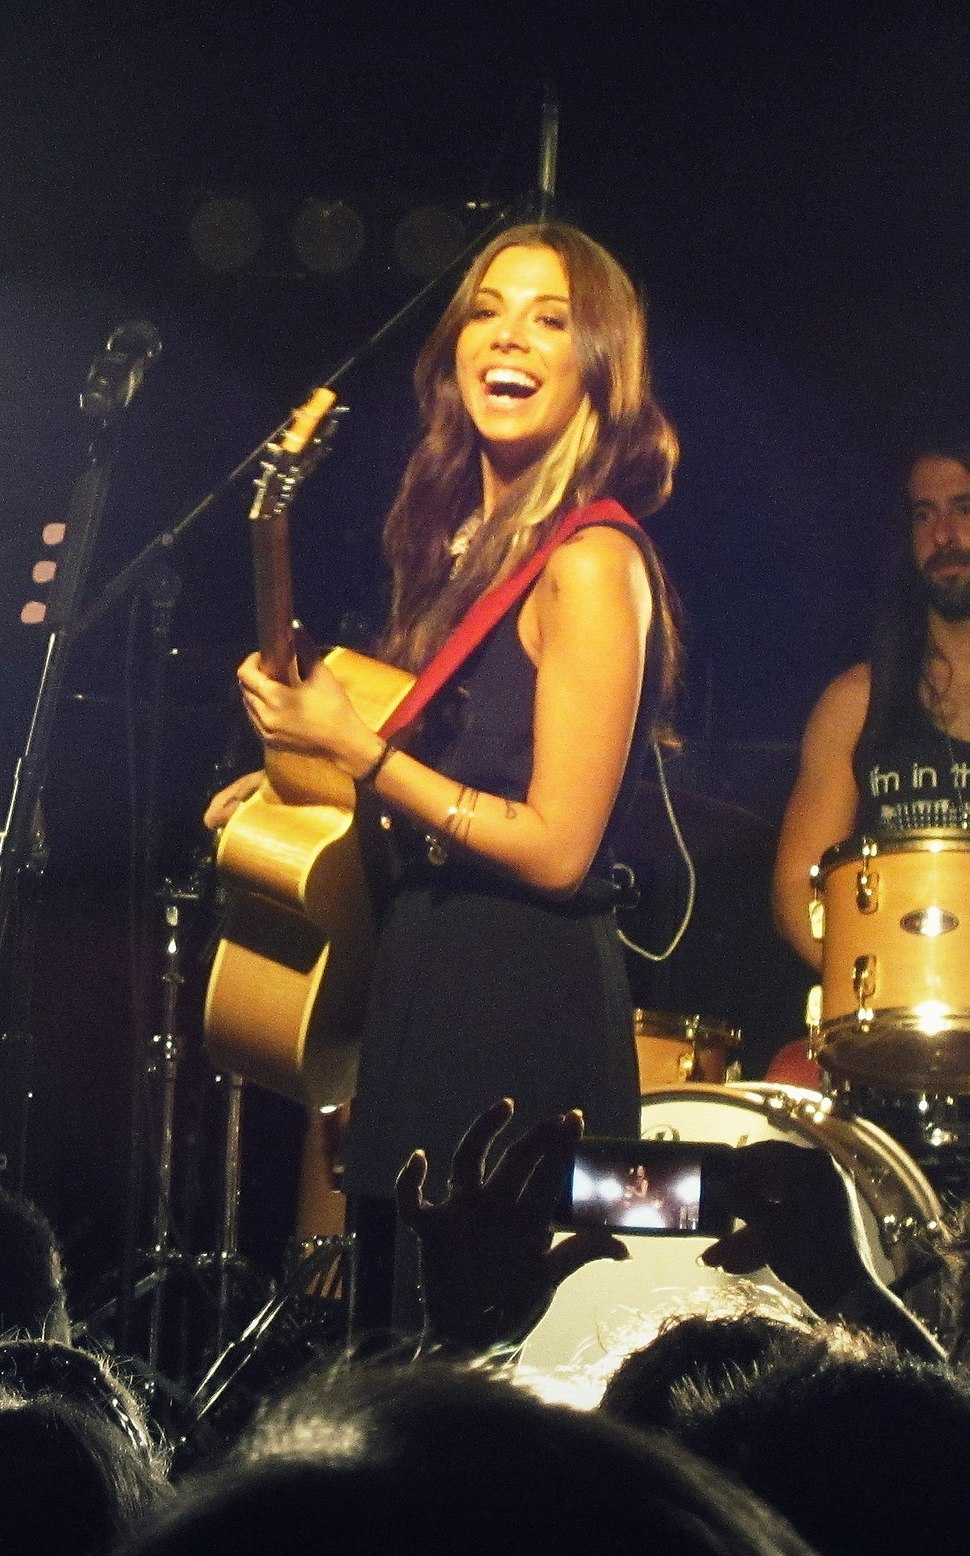 Christina Perri concert in 2012 (cropped)